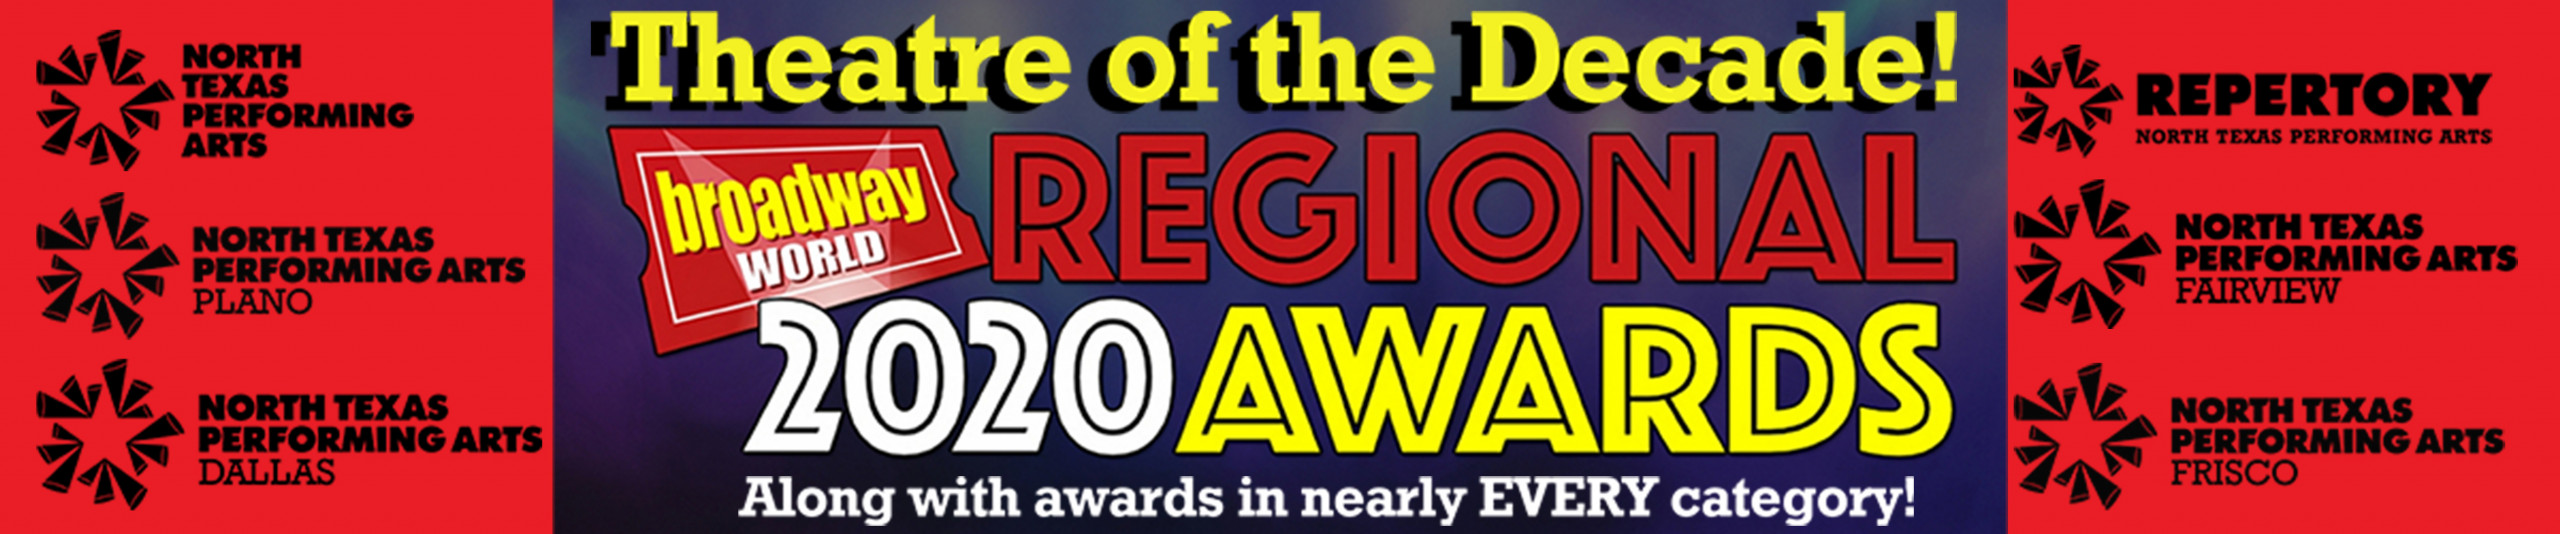 ntpa theatre of the decade broadway world awards